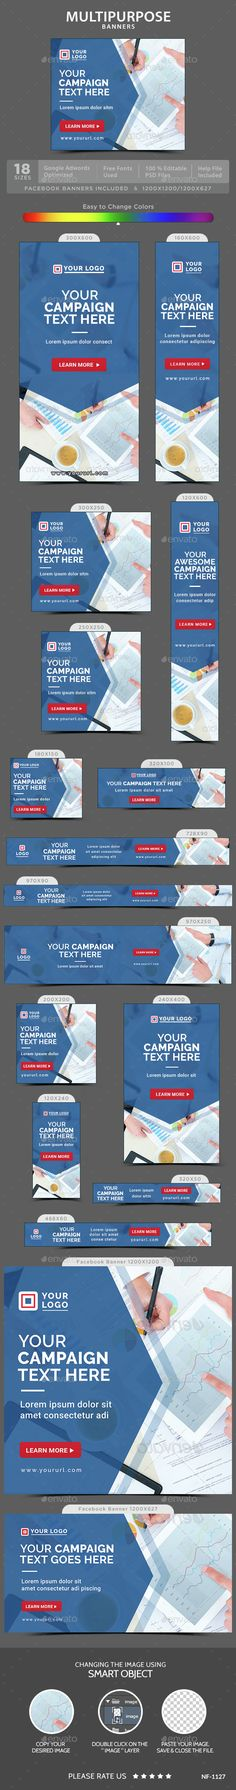 Multipurpose Web Banners Template PSD. Download here: http://graphicriver.net/item/multipurpose-banners/15122085?ref=ksioks